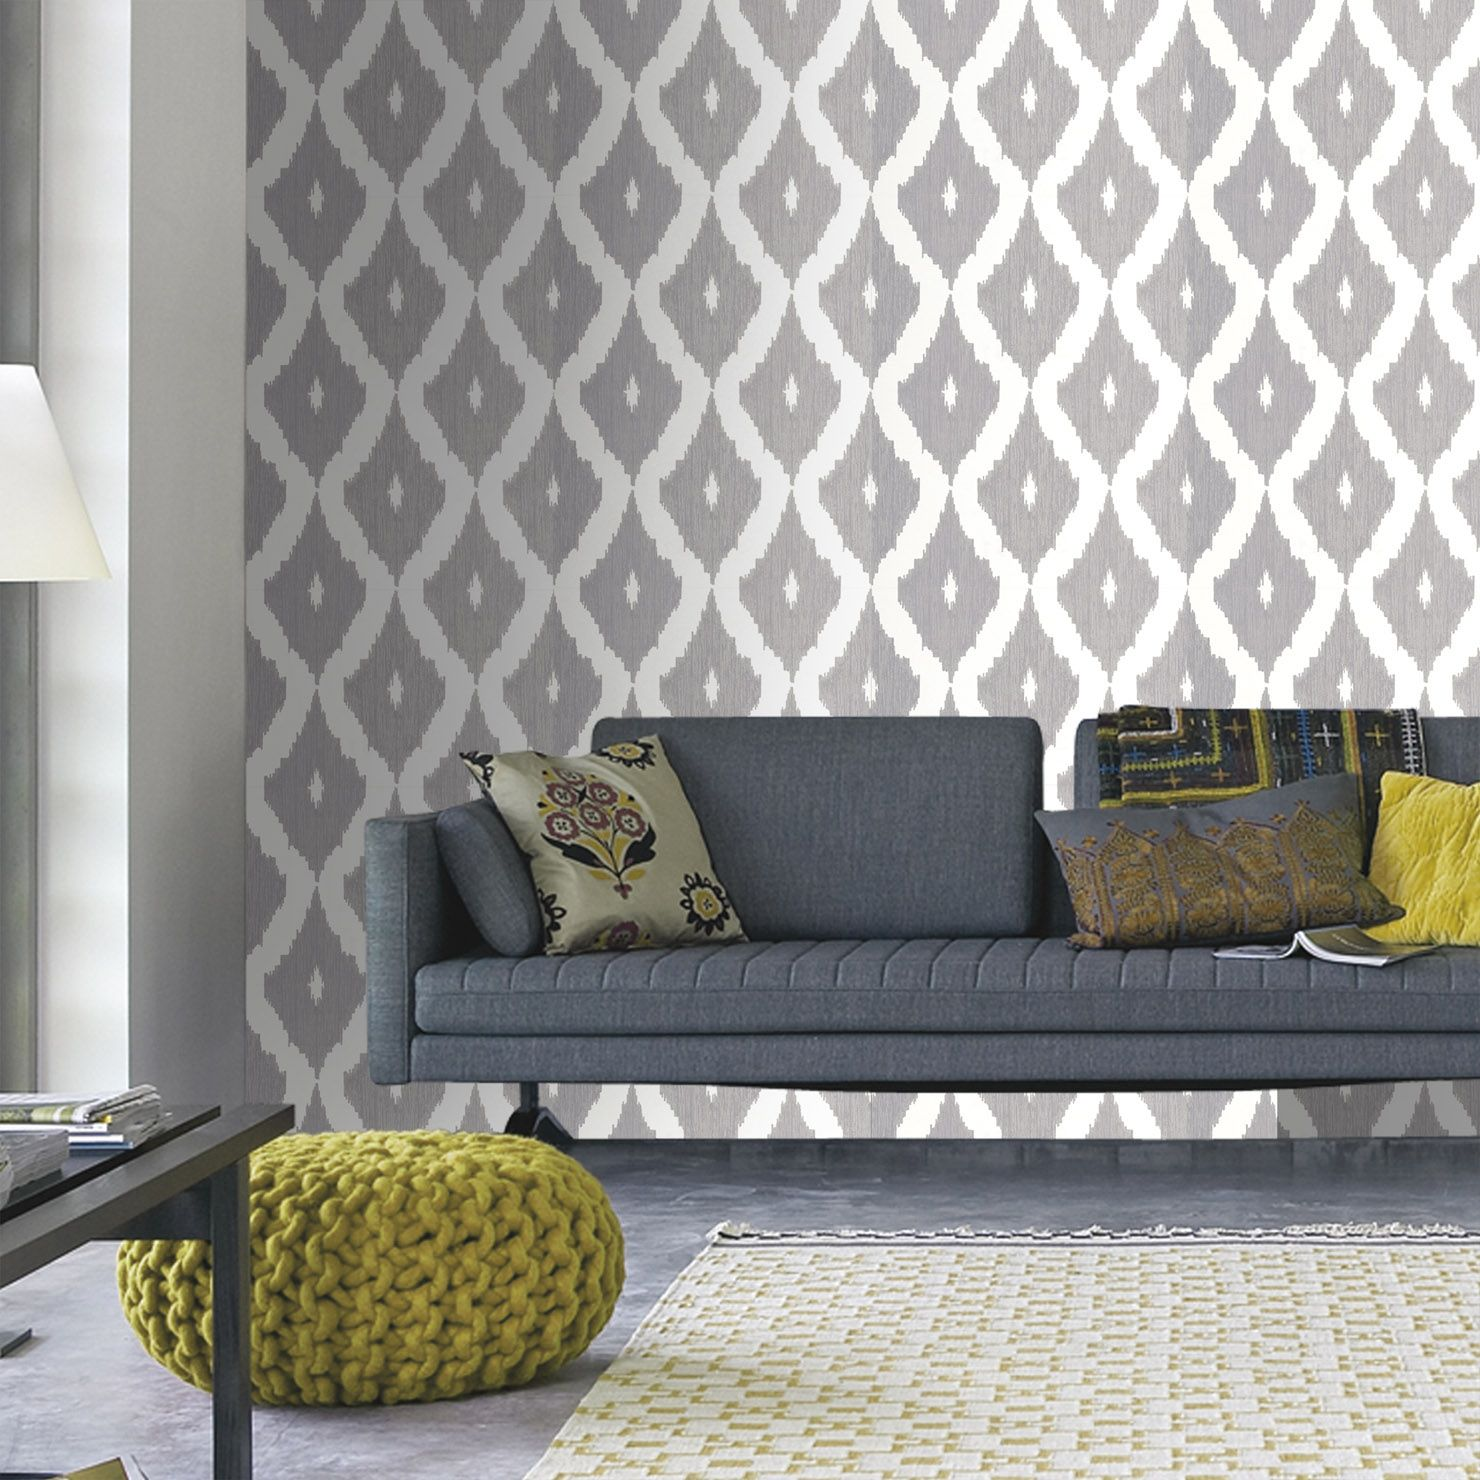 Kelly hoppen ikat wallpaper soft grey u white achica feature